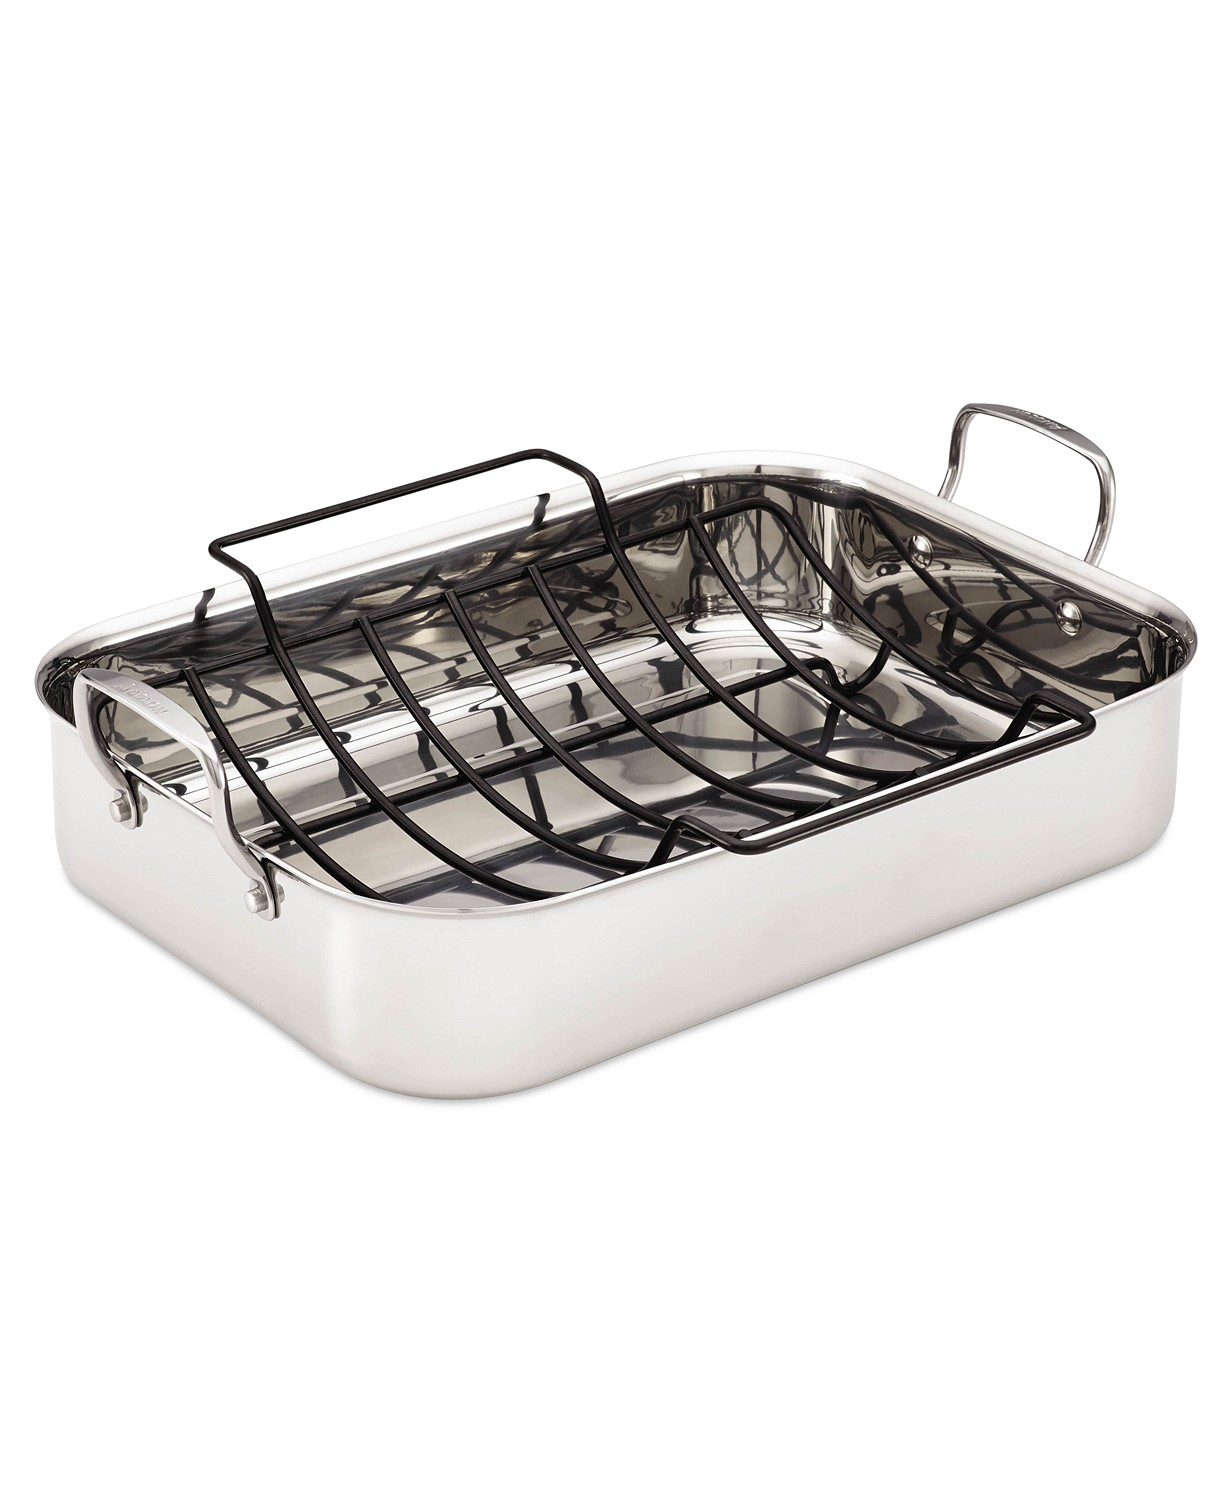 Save 60% on Anolon Tri-Ply Roaster with Roasting Rack